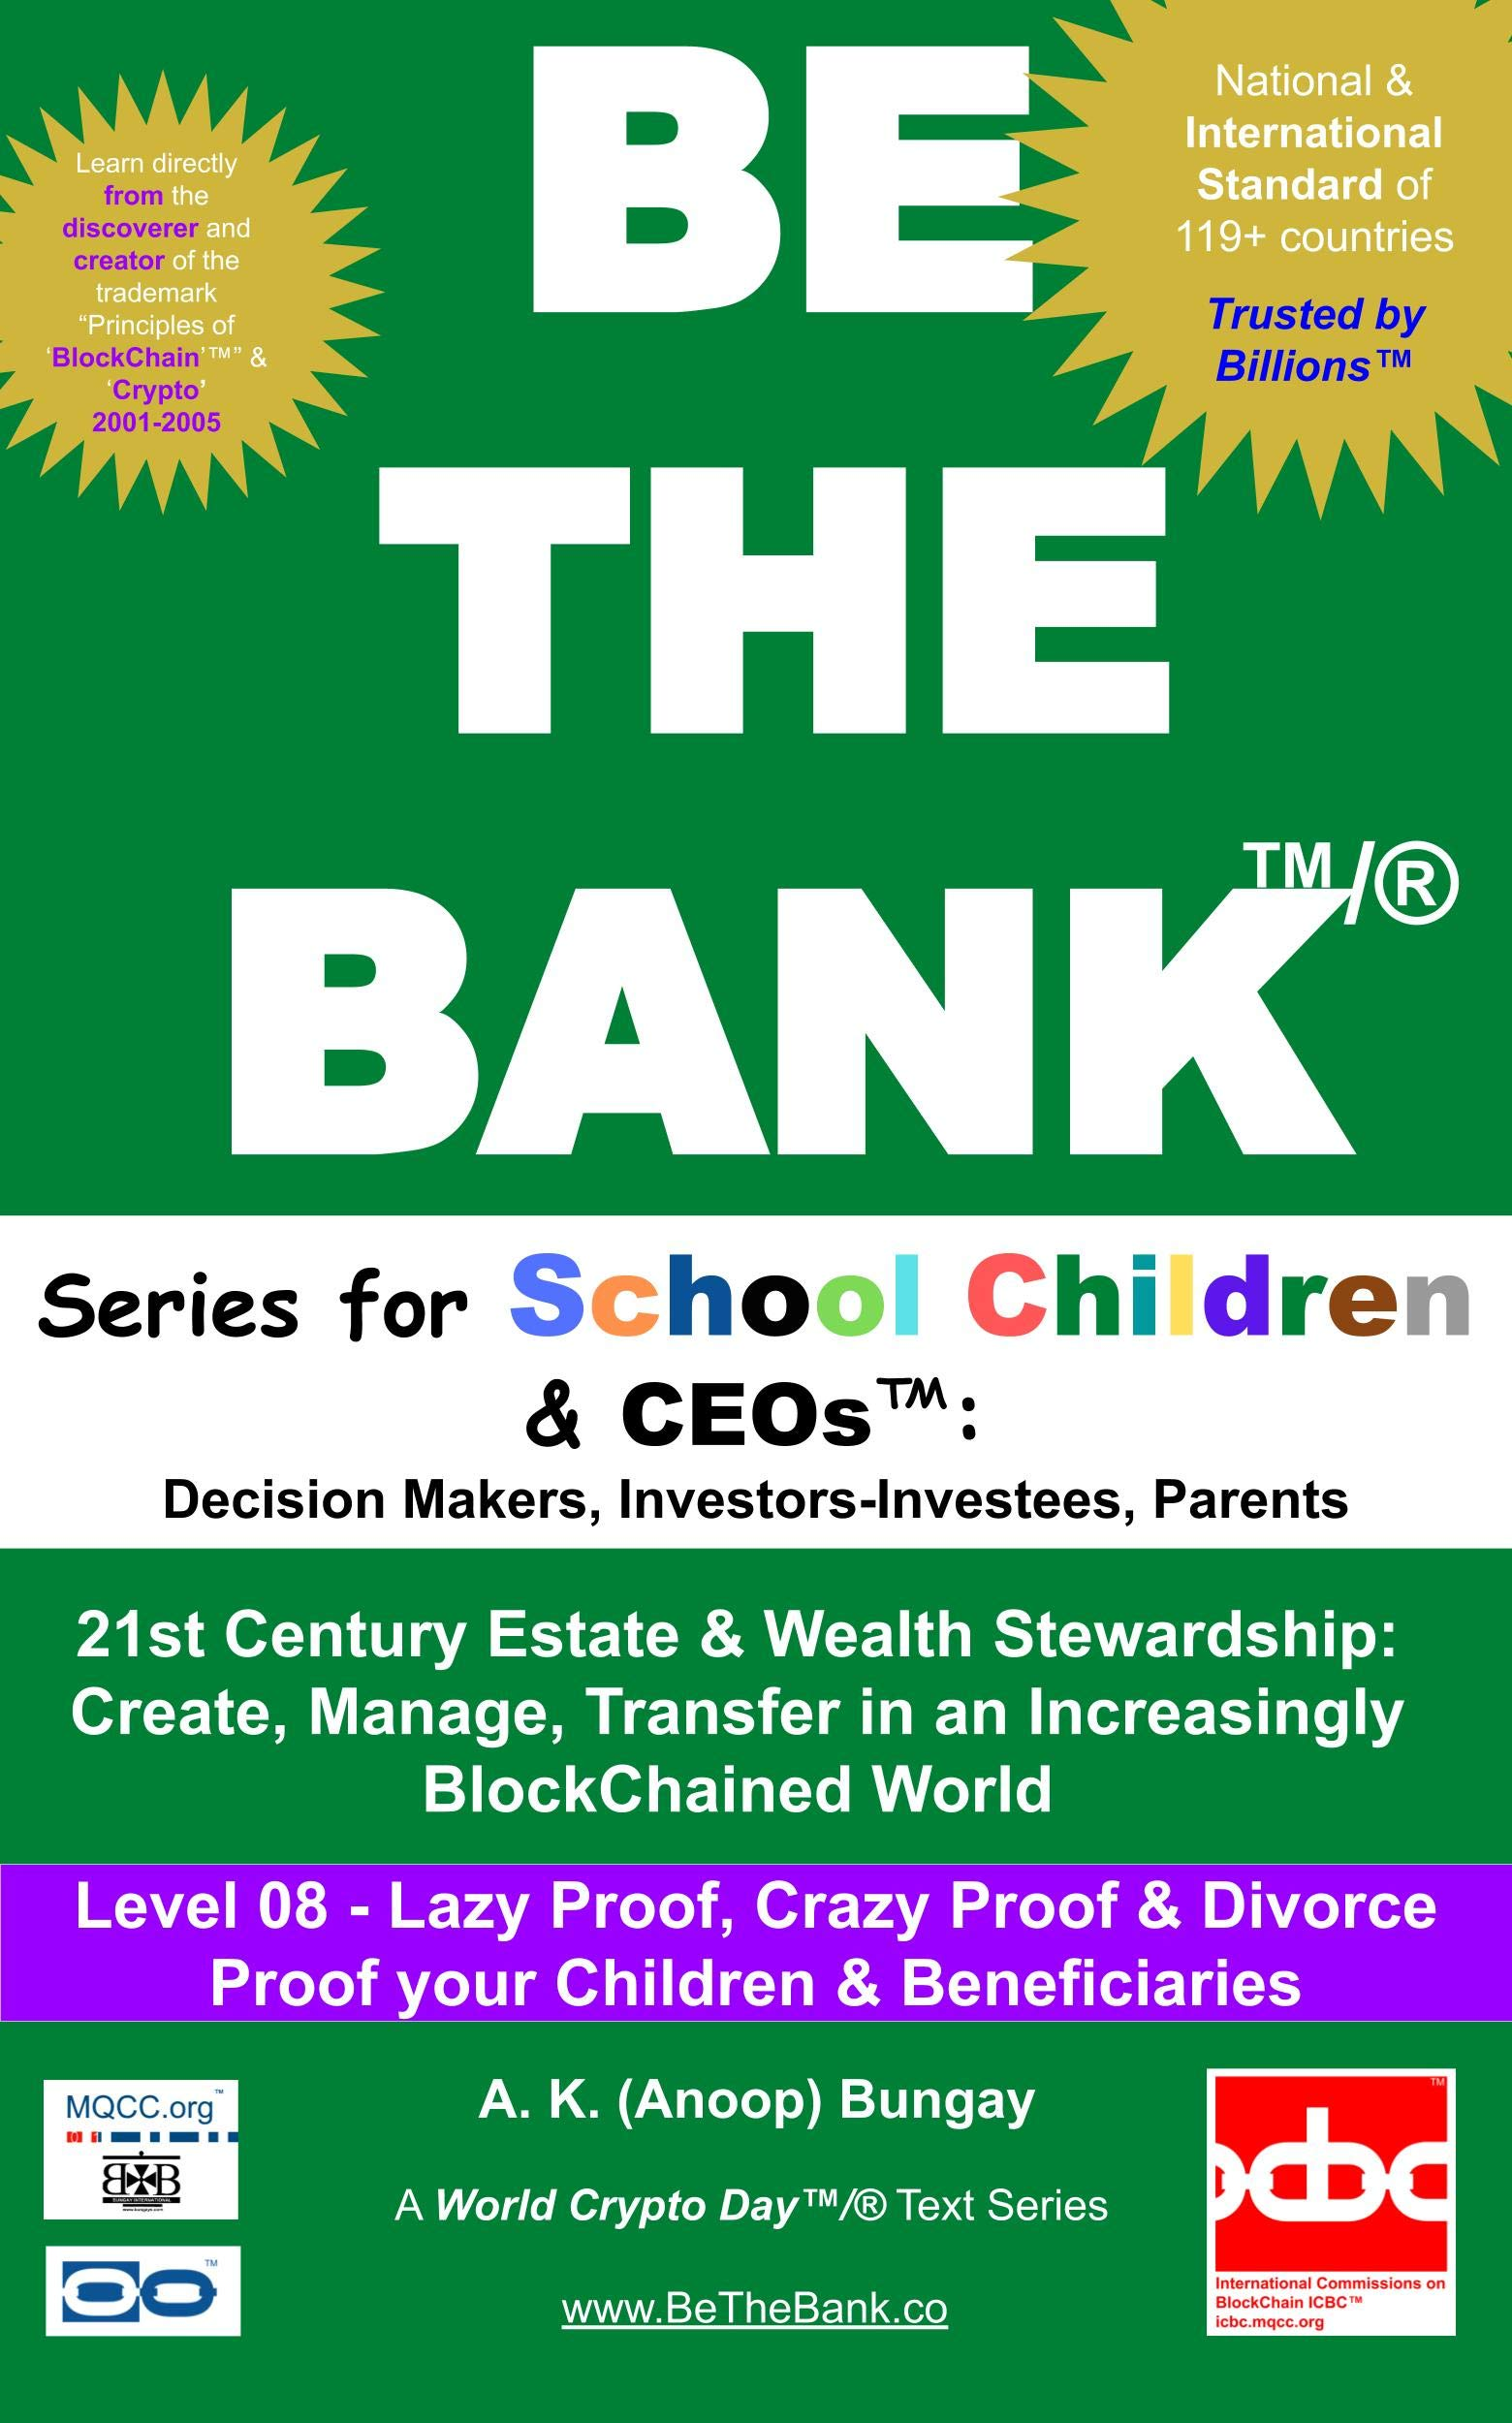 Be The Bank™/® Level 08-Lazy Proof, Crazy Proof & Divorce Proof your Children & Beneficiaries: 21st Century Estate & Wealth Stewardship: Create, Manage, Transfer in an Increasingly BlockChained World